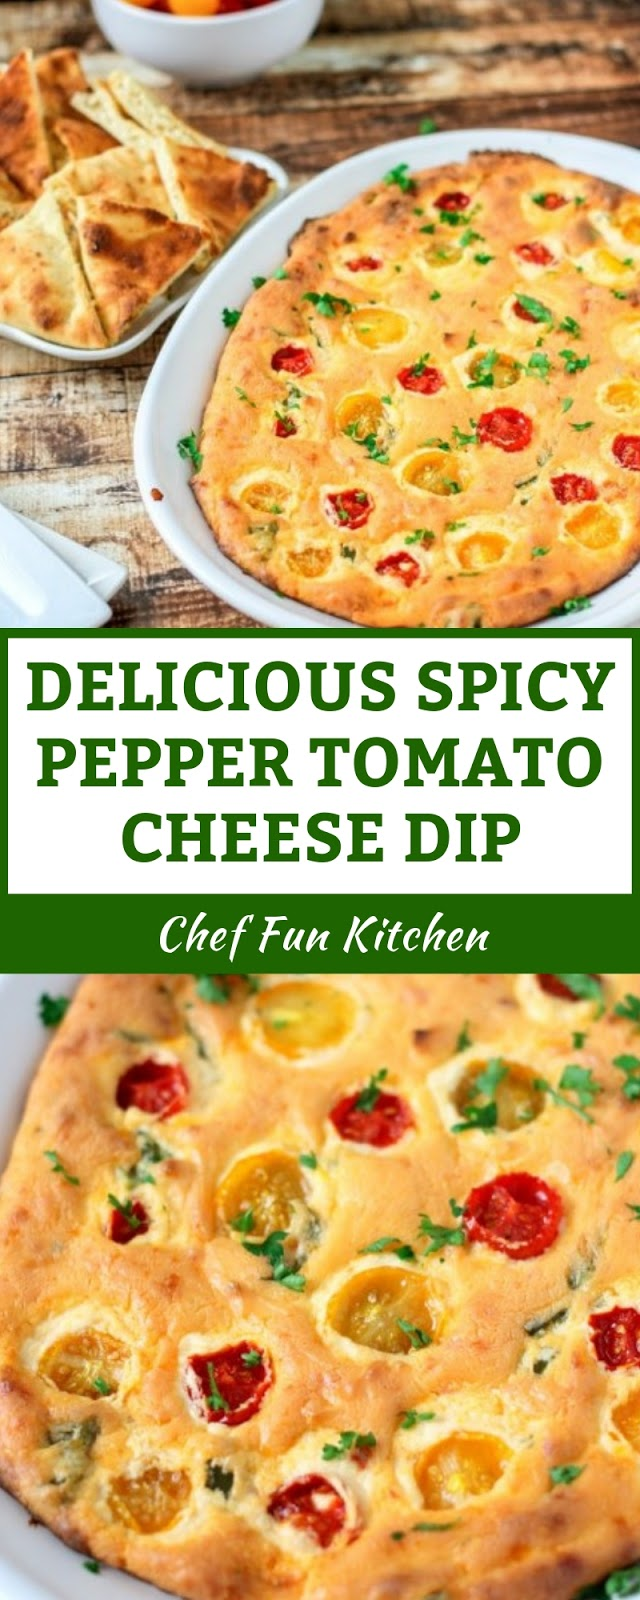 DELICIOUS SPICY PEPPER TOMATO CHEESE DIP